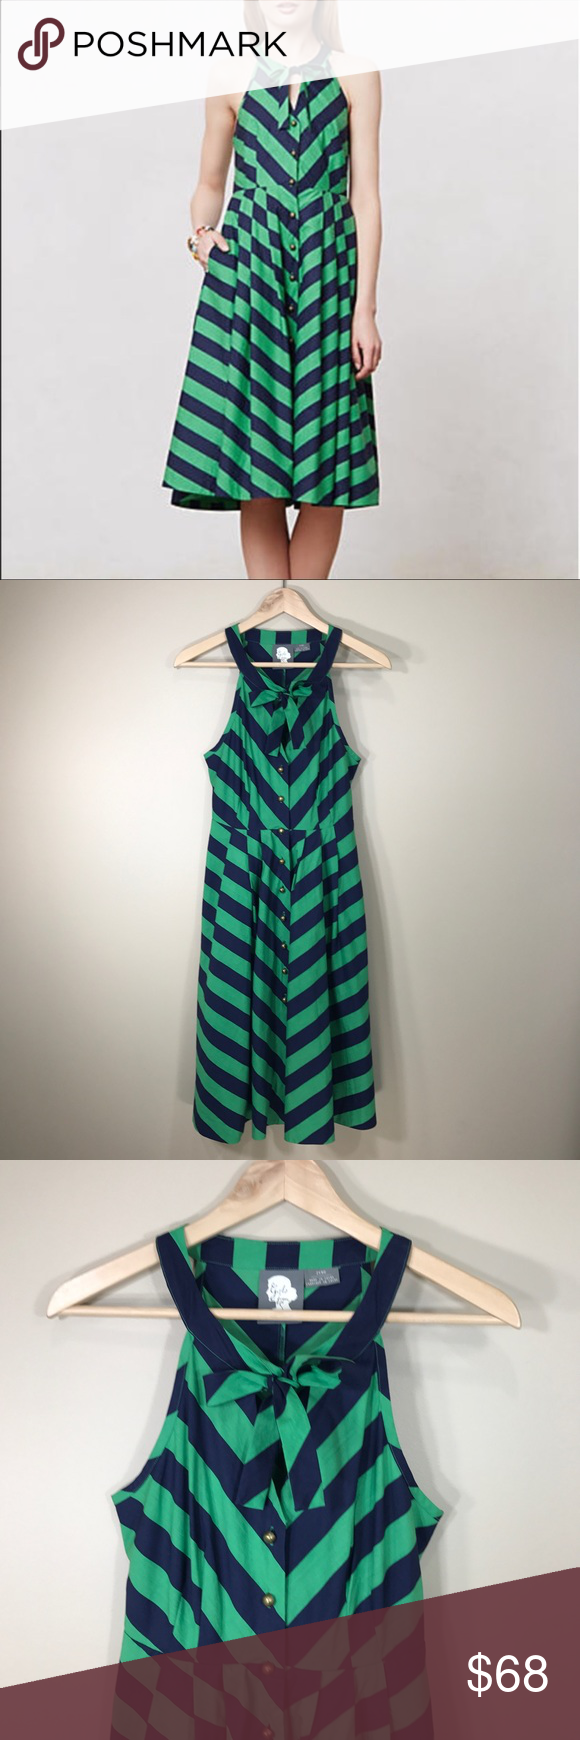 ee58eb26ef Anthro Girls from Savoy emerald ripple dress sz 0 Gorgeous navy and green  hunter chevron pattern shirt dress from Girls from Savoy